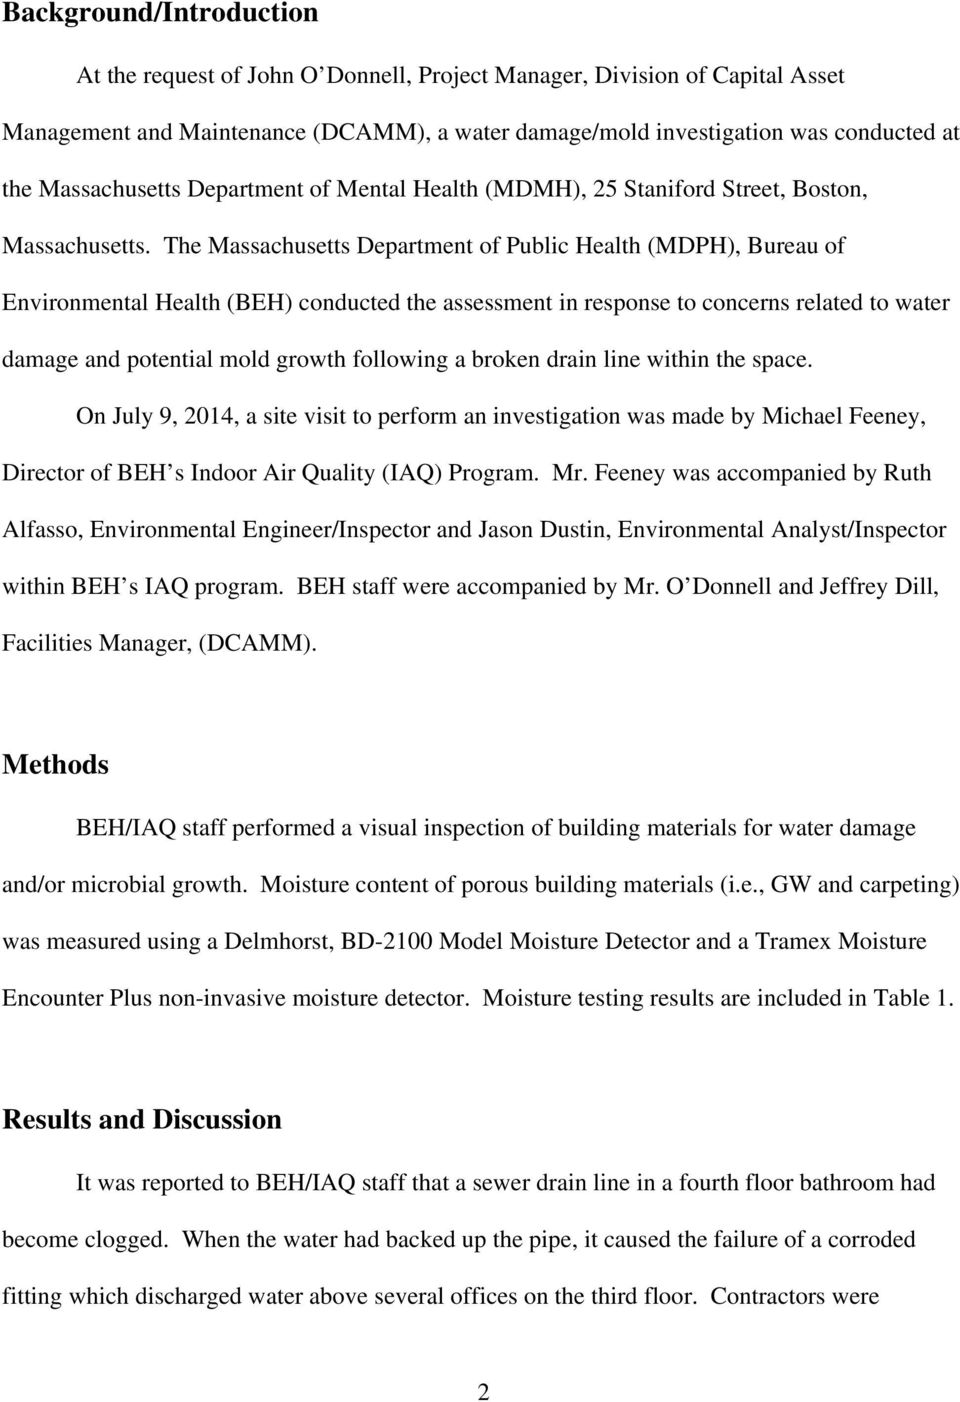 The Massachusetts Department of Public Health (MDPH), Bureau of Environmental Health (BEH) conducted the assessment in response to concerns related to water damage and potential mold growth following